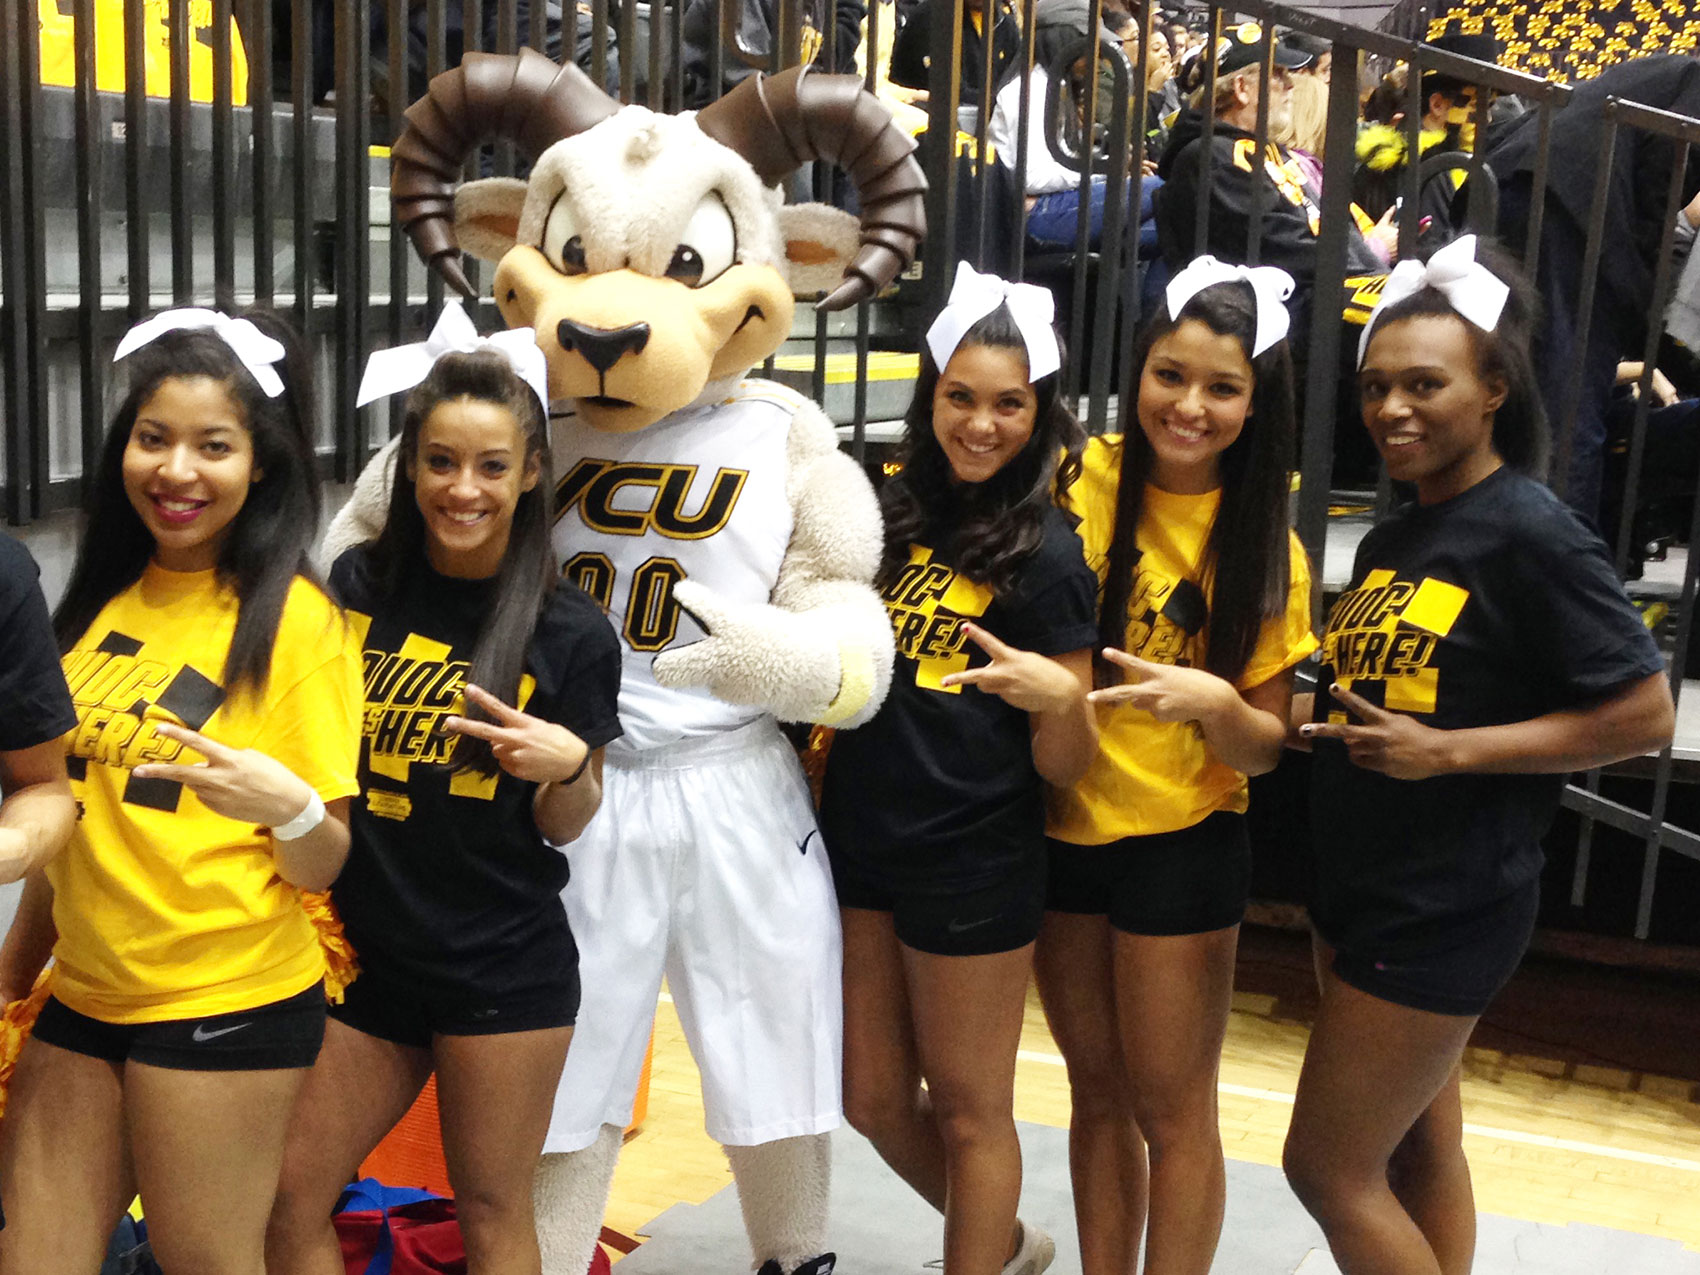 Cheer squad posing with mascott making greater than symbol with their hands